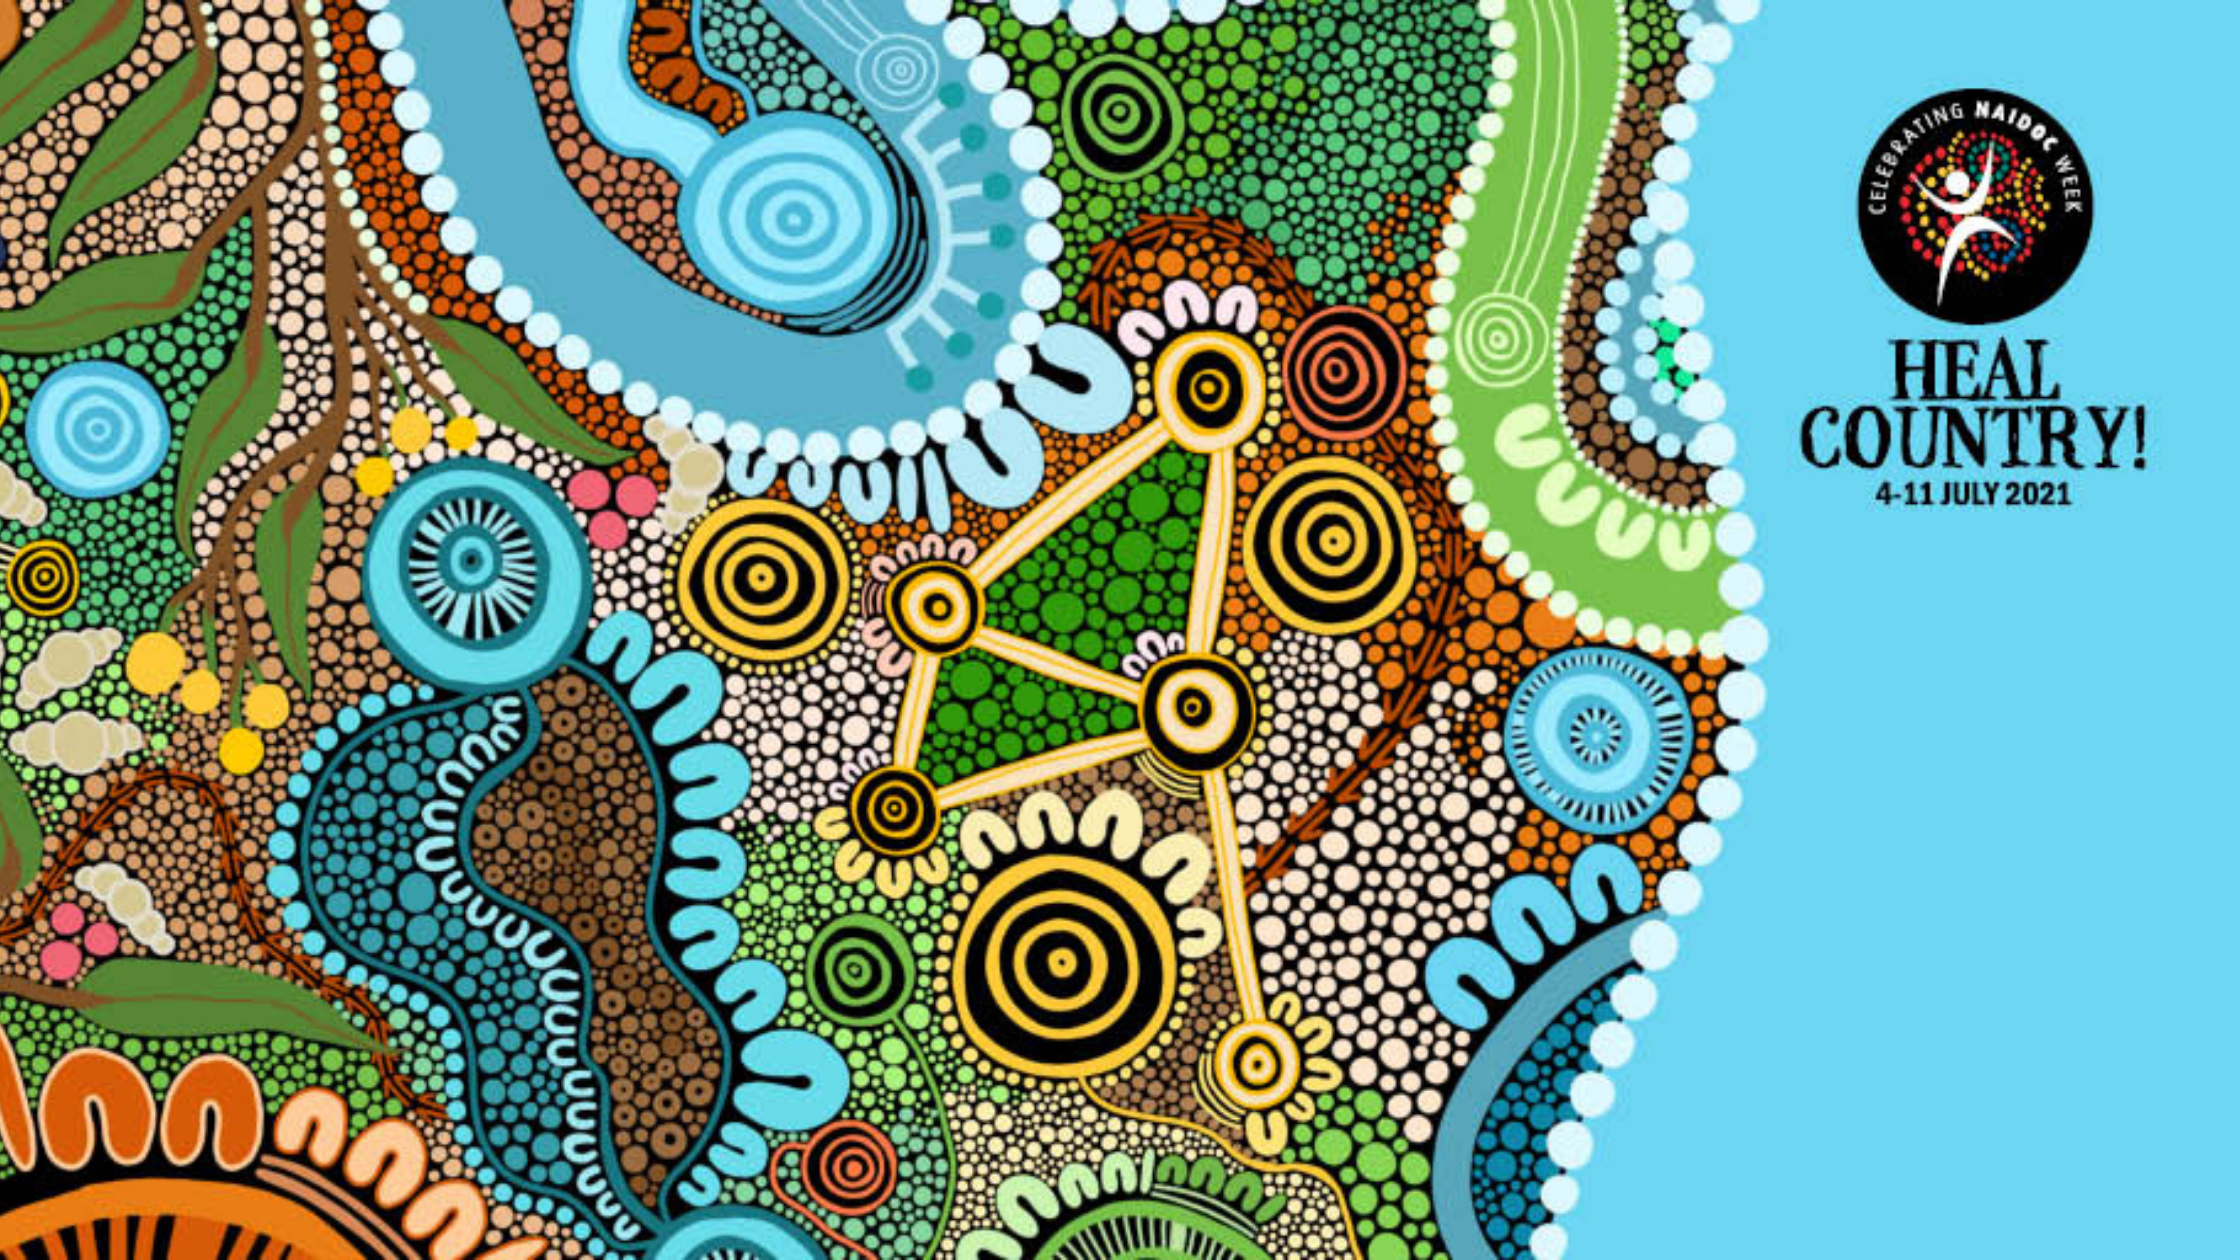 This year's NAIDOC Week theme is Heal Country!